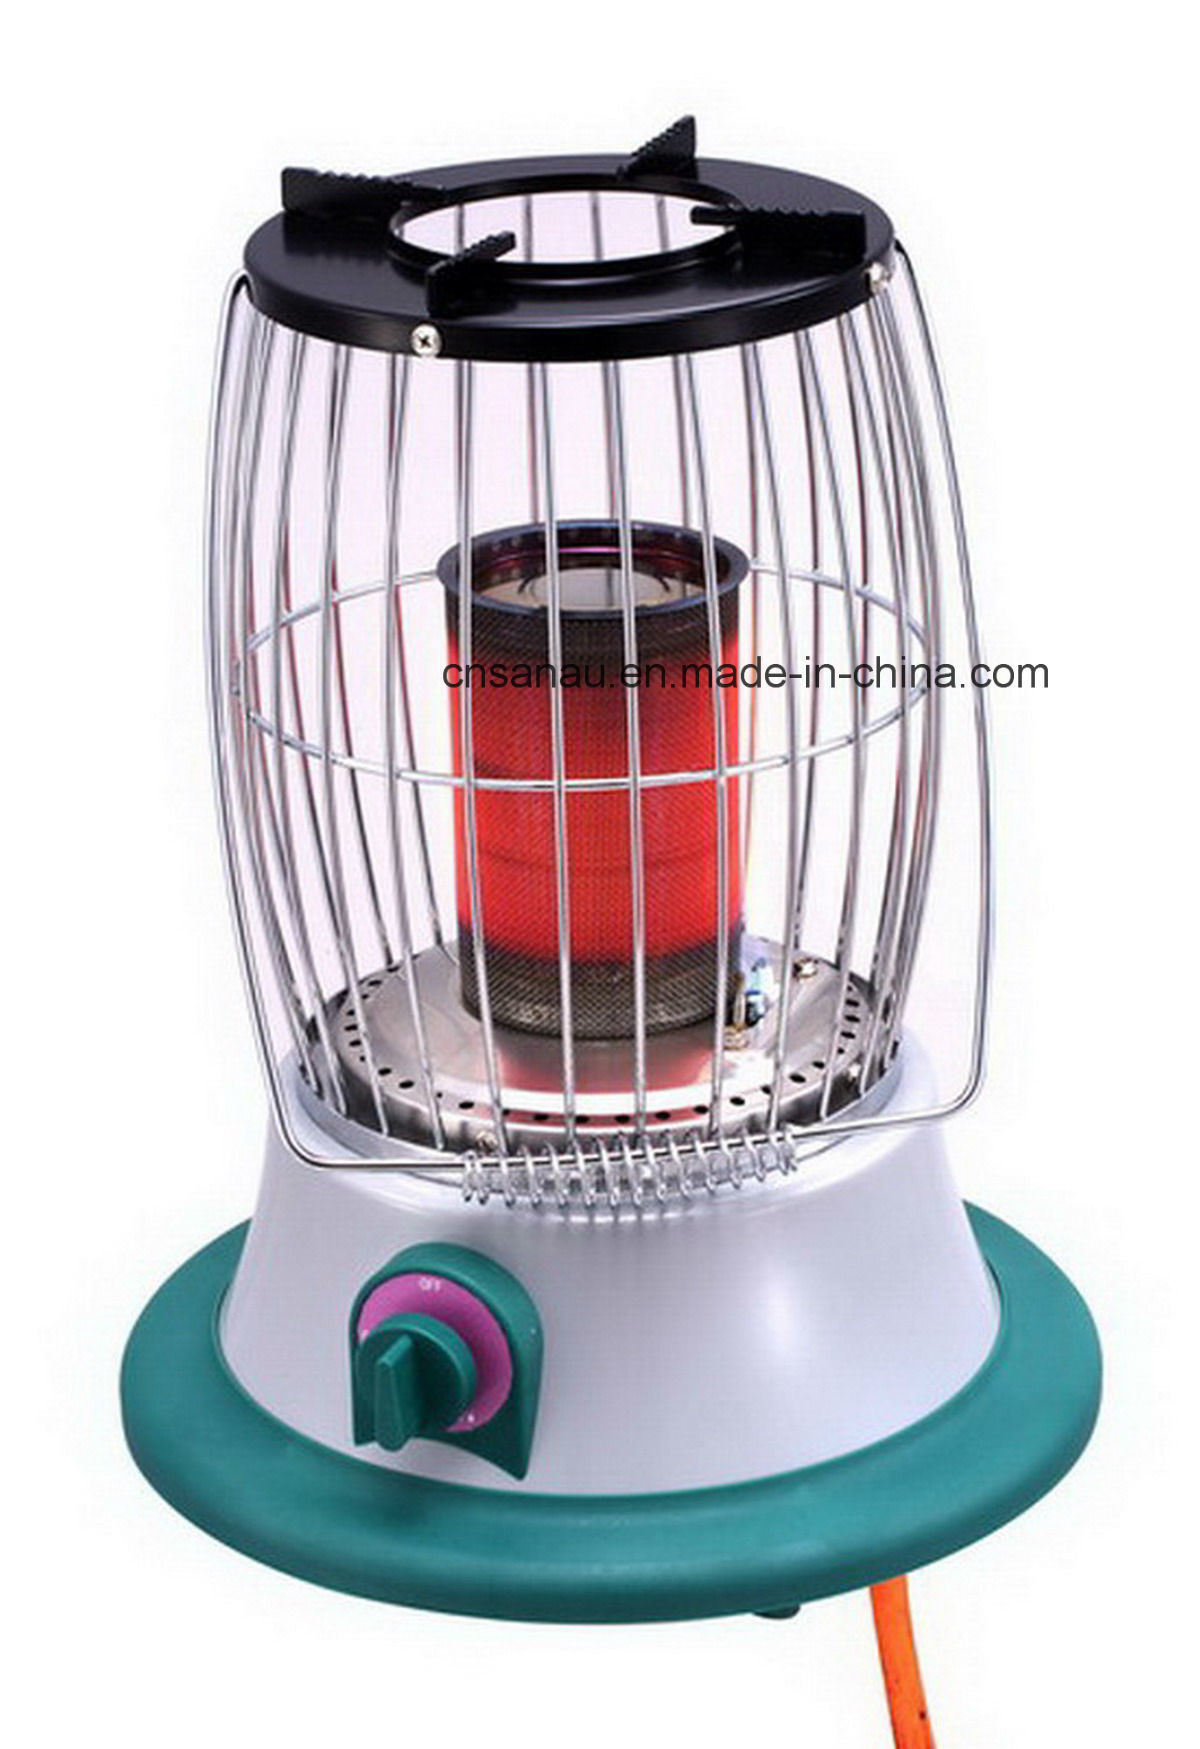 Portable Gas Heater with Ceramic Burner Sn12-St pictures & photos